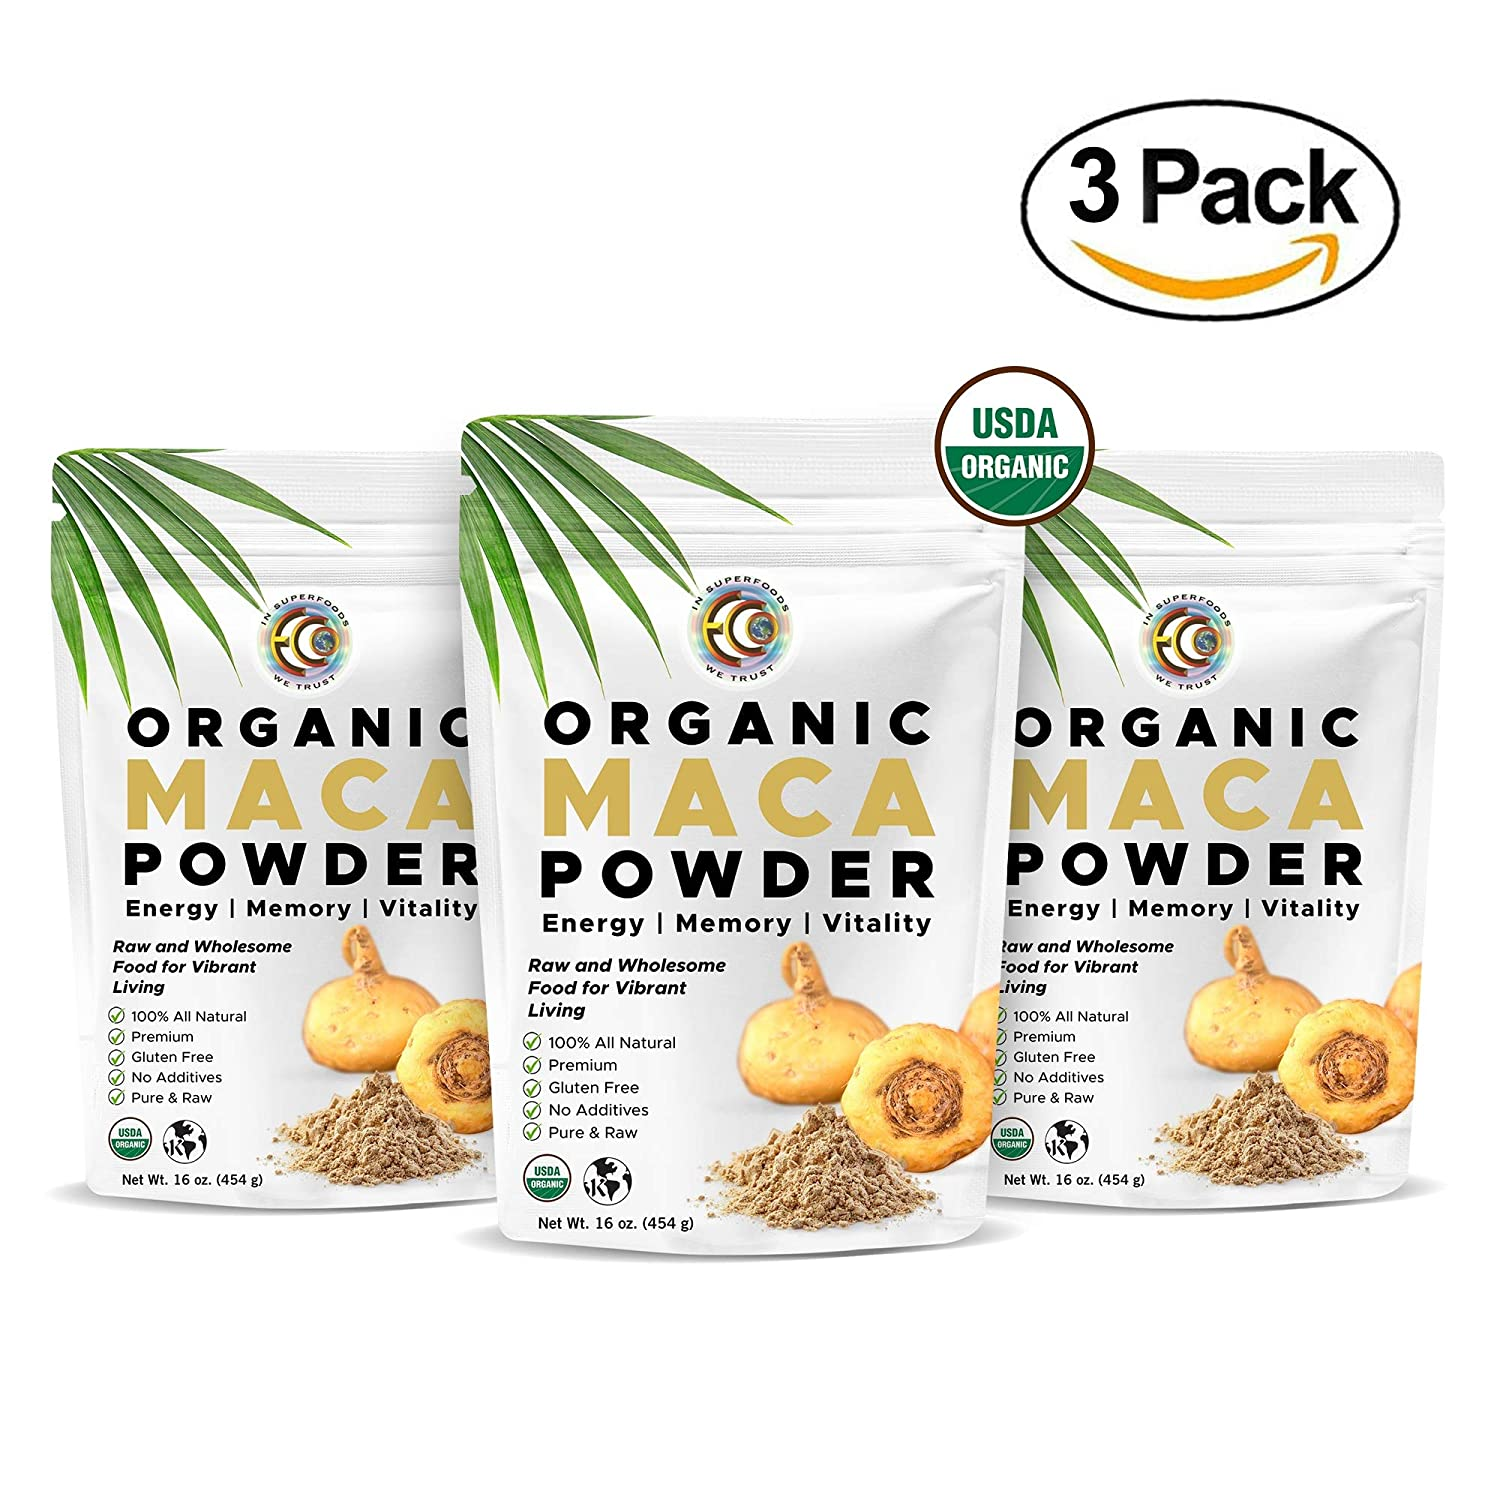 Earth Circle Organics – Organic Maca Root Powder, Natural Superfood, Helps with Energy, Hormone, Weight and Women s Fertility – USDA Vegan Certified – 1lb 3 Pack